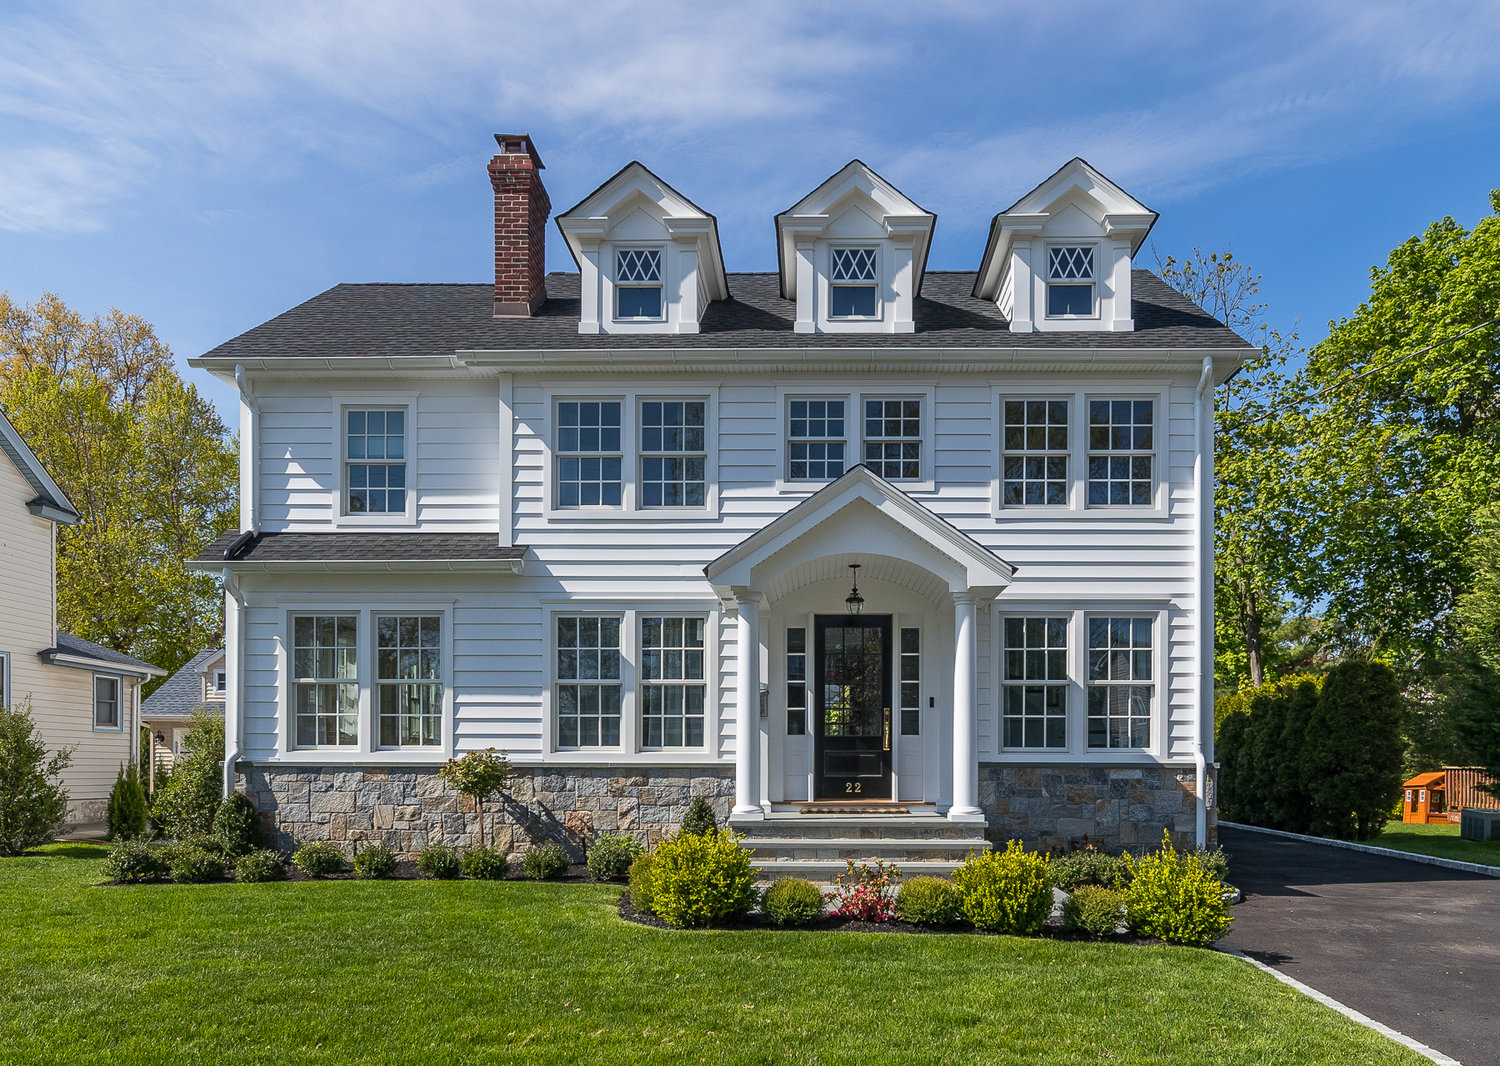 This home on Hampton Court recently sold for $1,670,000. It was listed at $1,685,000.